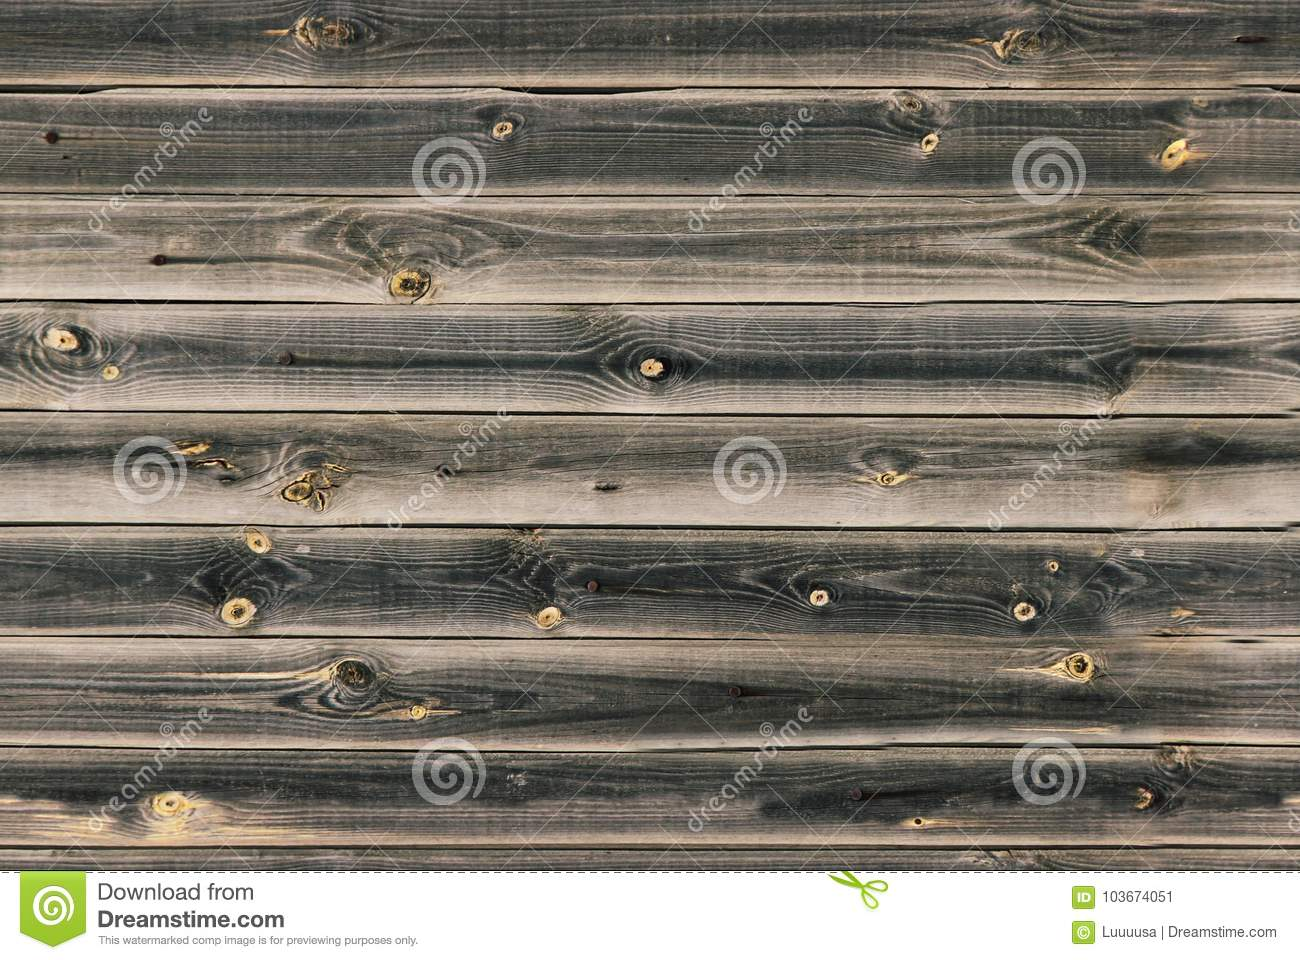 Download Wooden Lining Boards Wall Dark Brown Wood Texture Background Old Panels Seamless